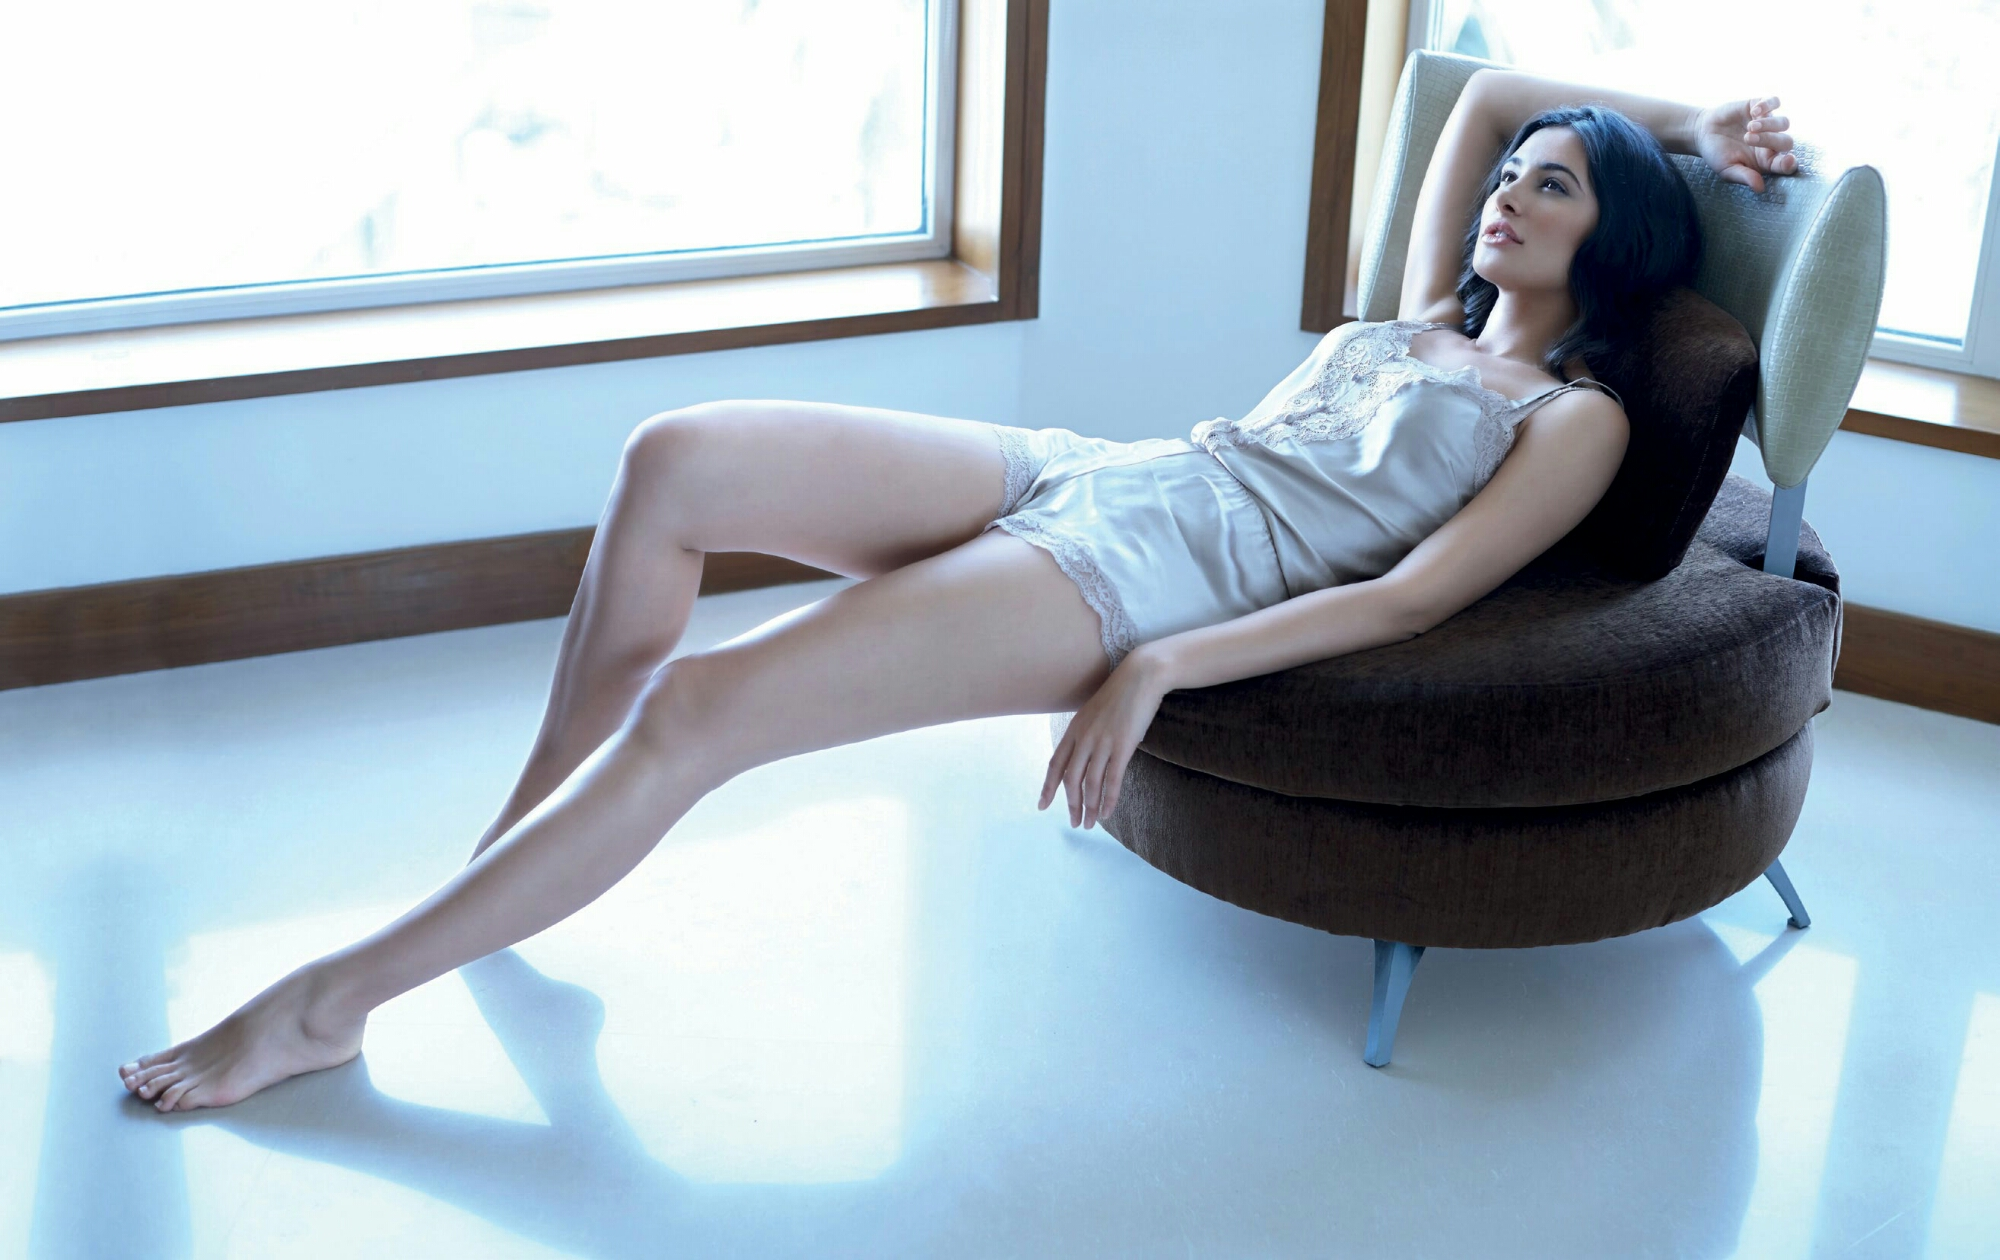 maxresdefault7 - Hottest legs in Bollywood! Tall actresses in Bollywood